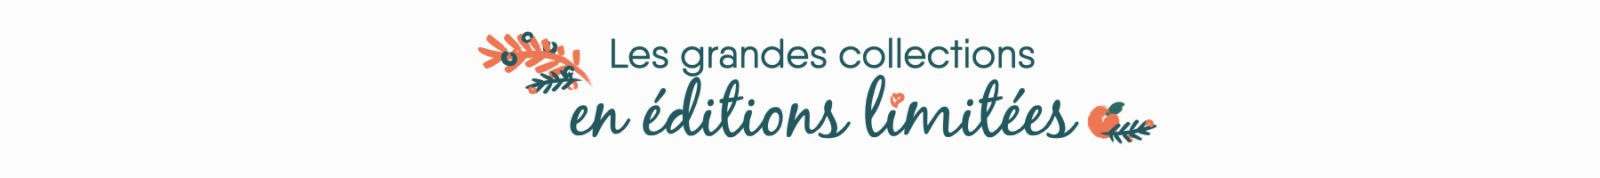 LES GRANDES COLLECTION TETRASLIRE BOUTIQUE DE NOEL